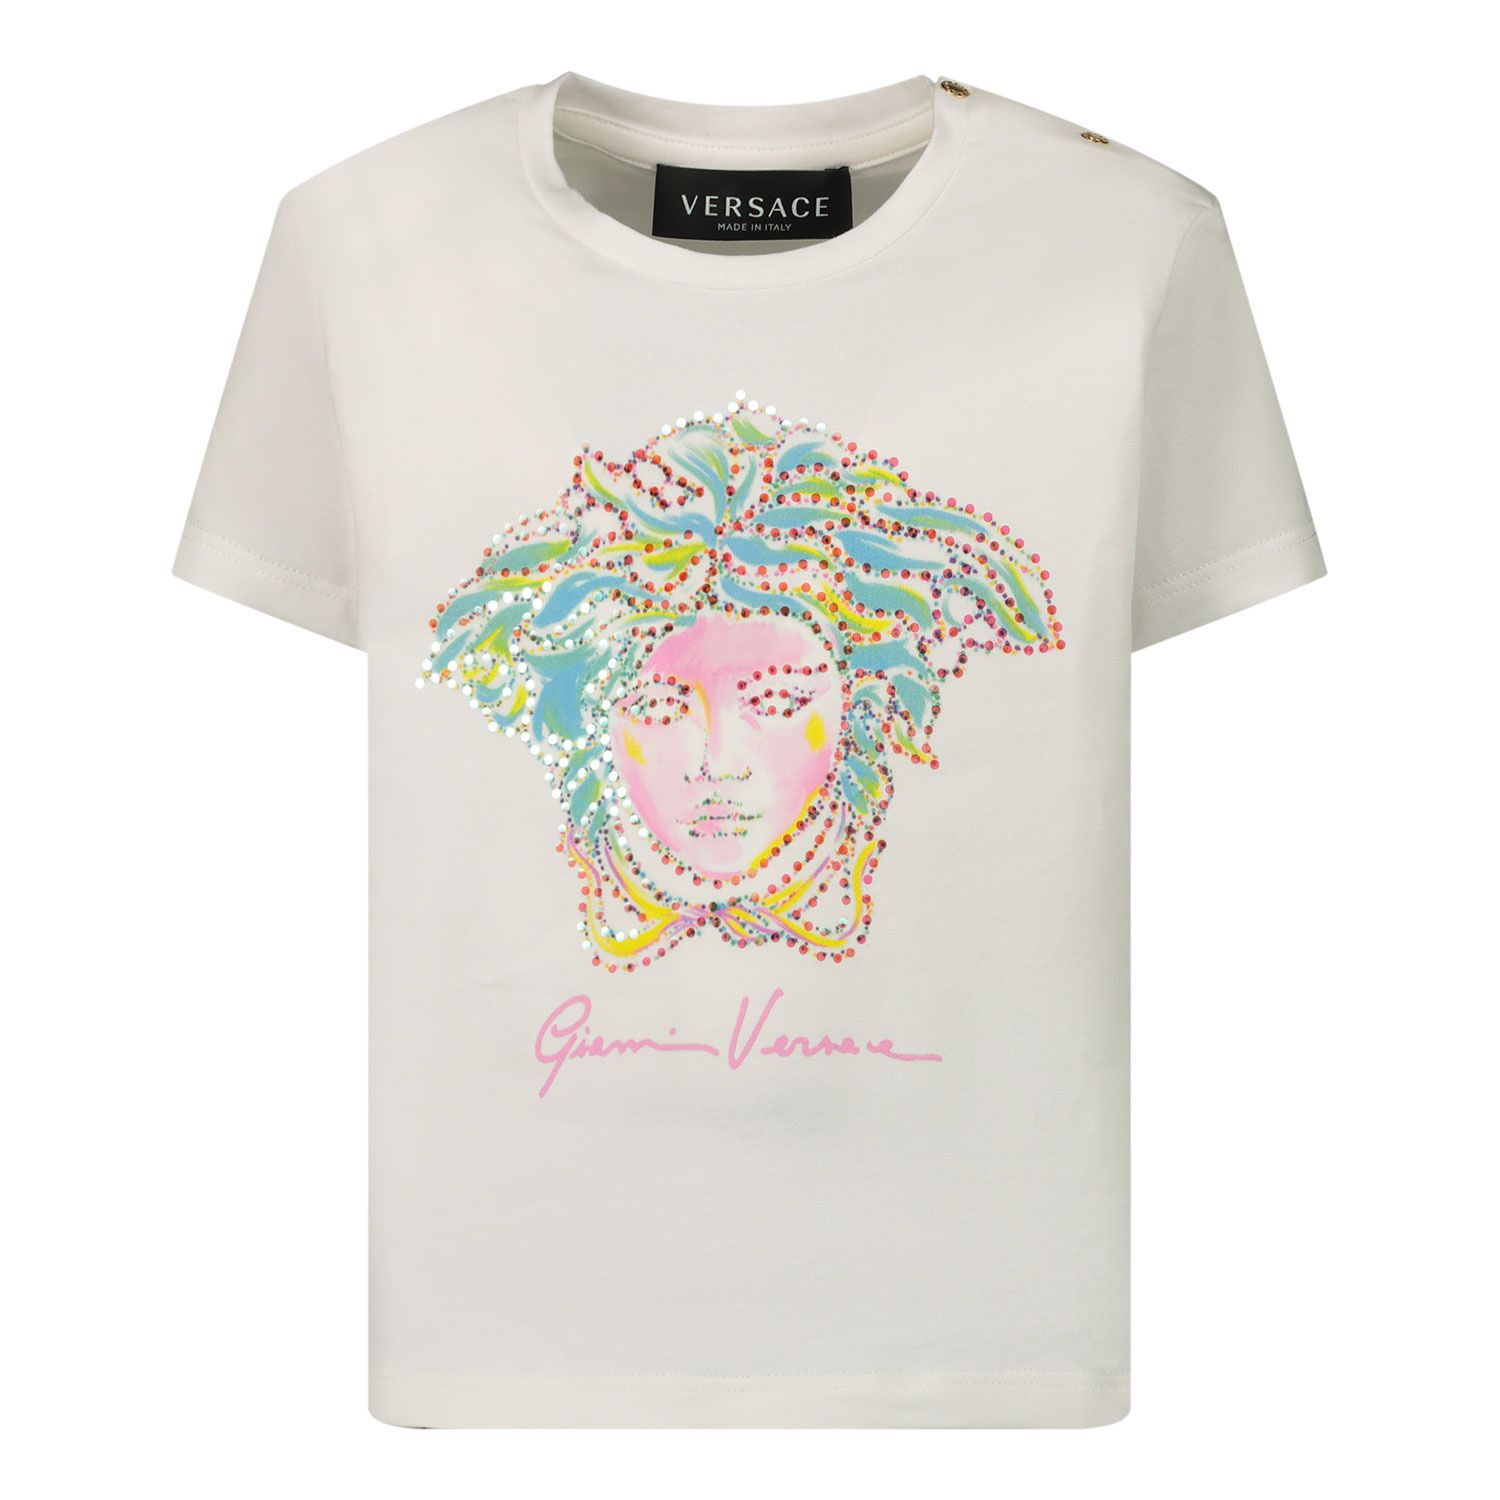 Picture of Versace 1000152 baby shirt white